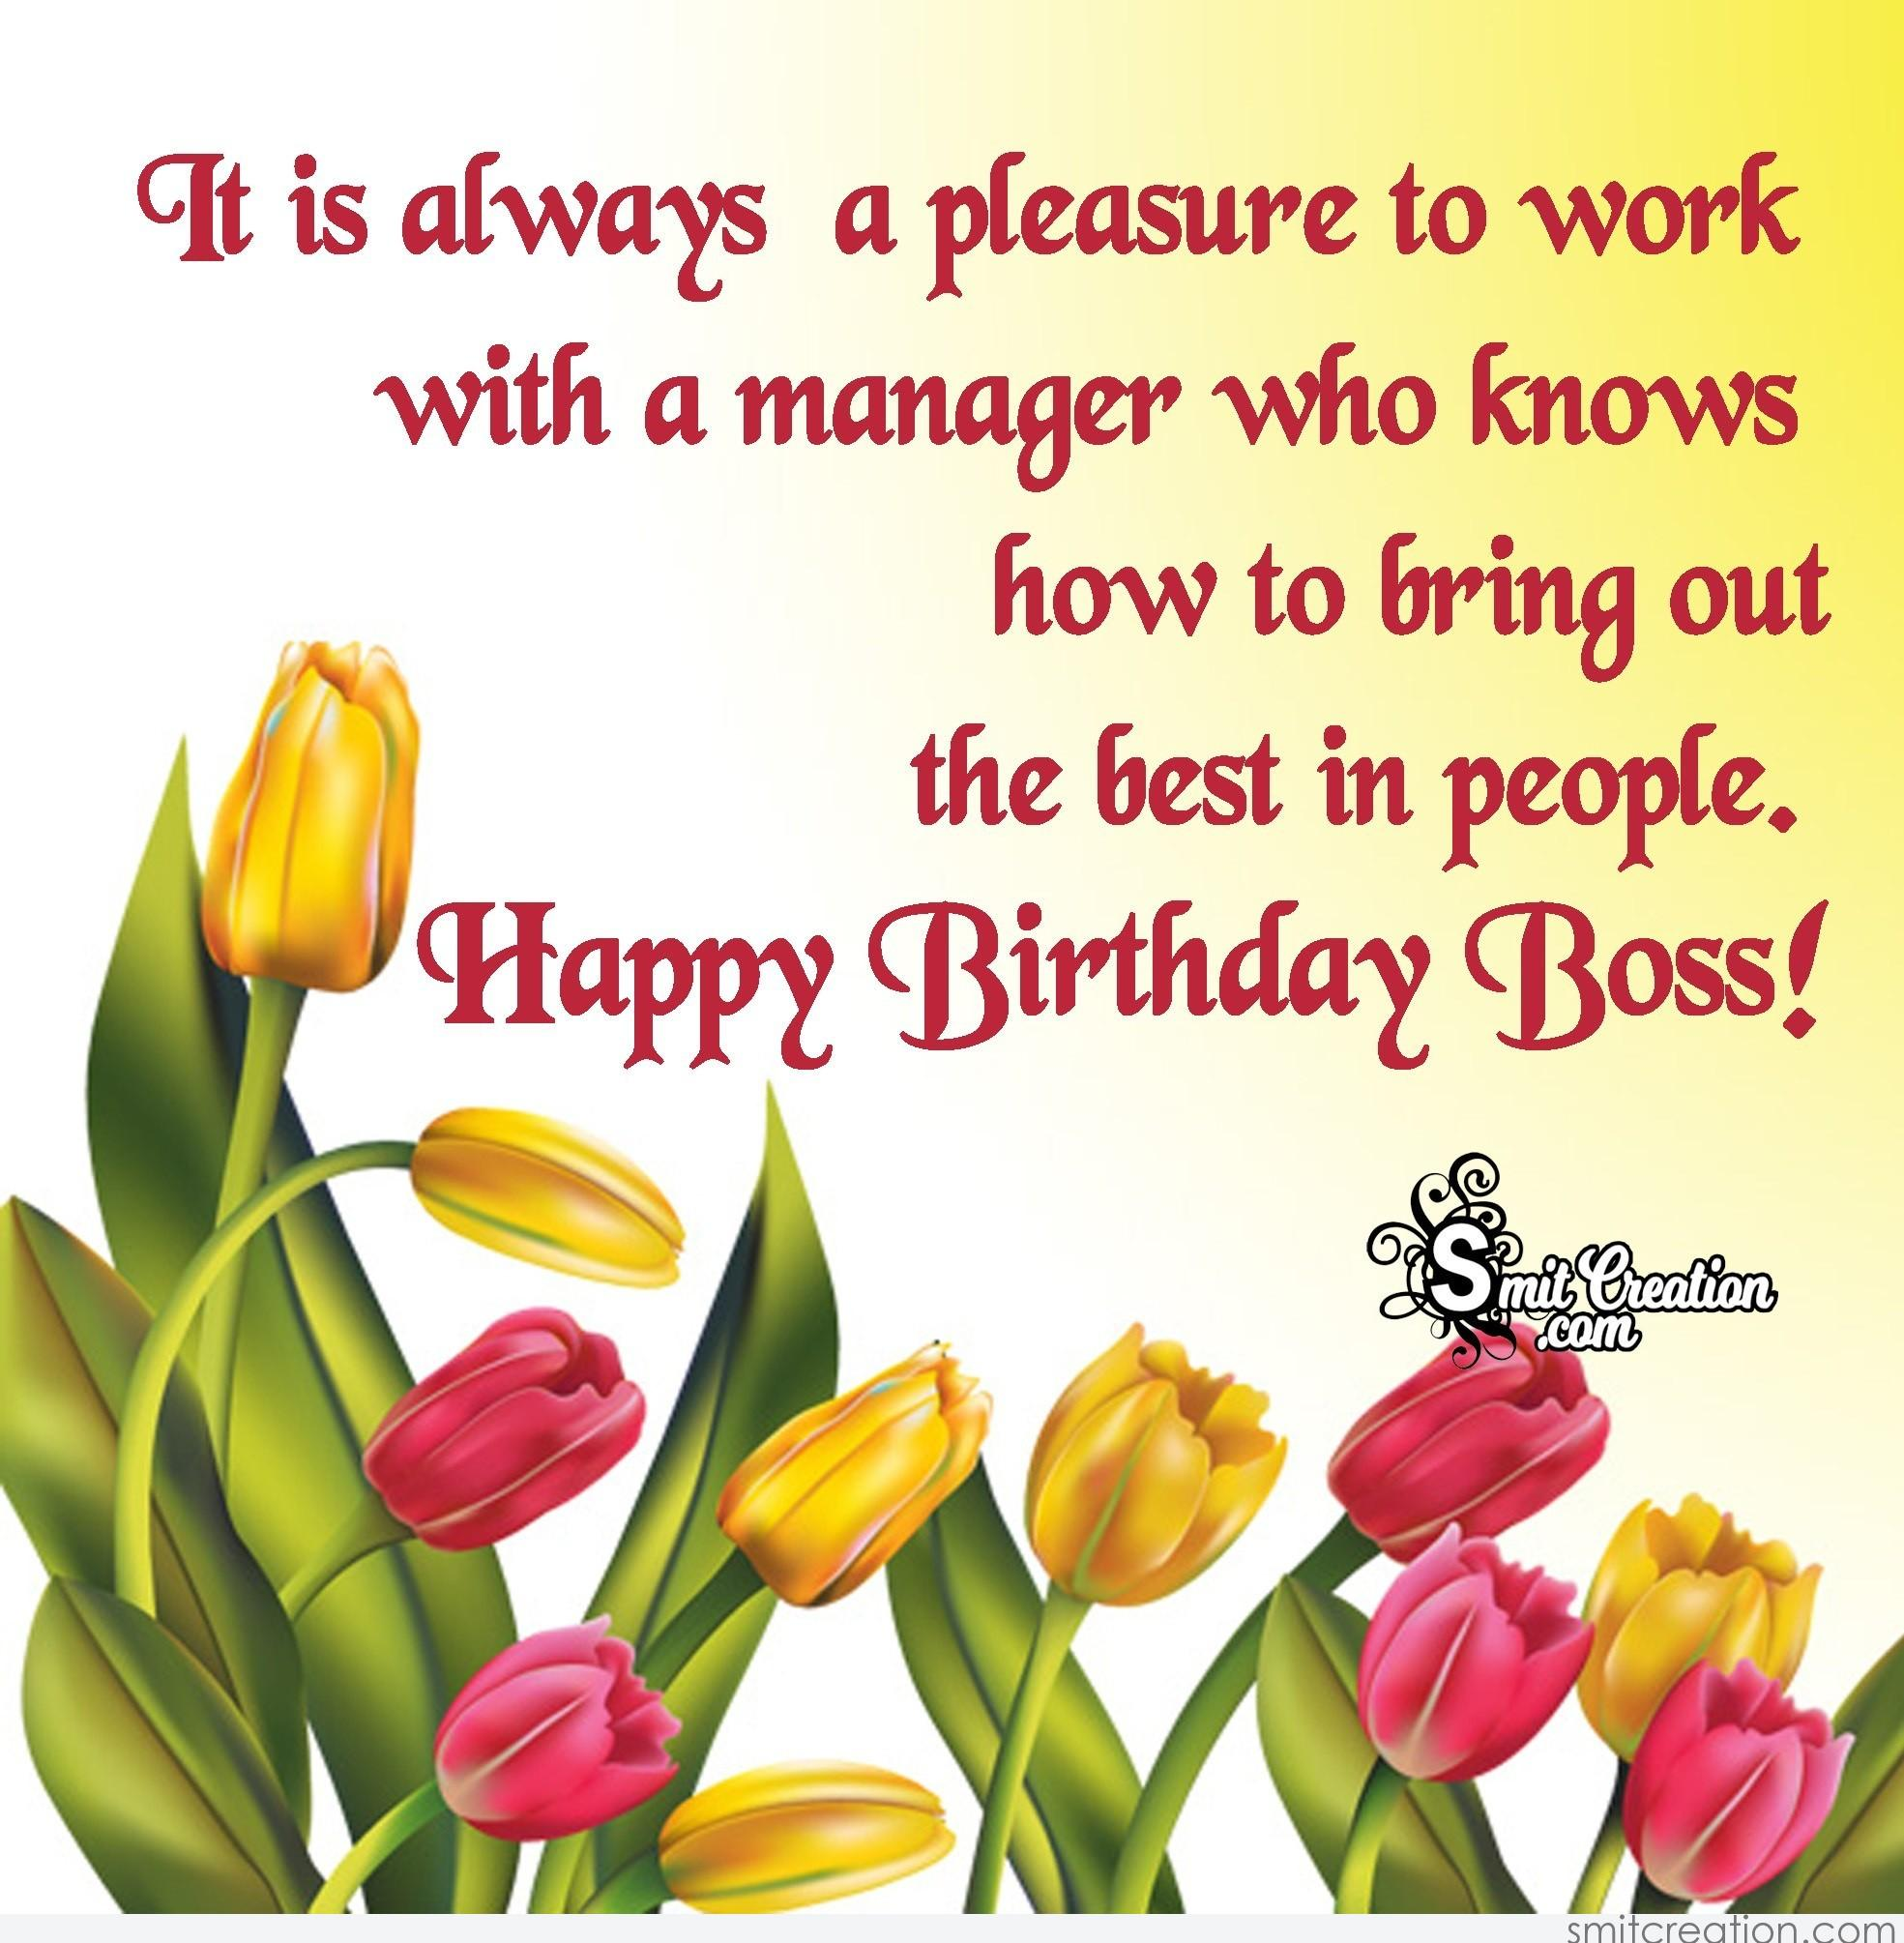 Happy Birthday Boss! - SmitCreation.com